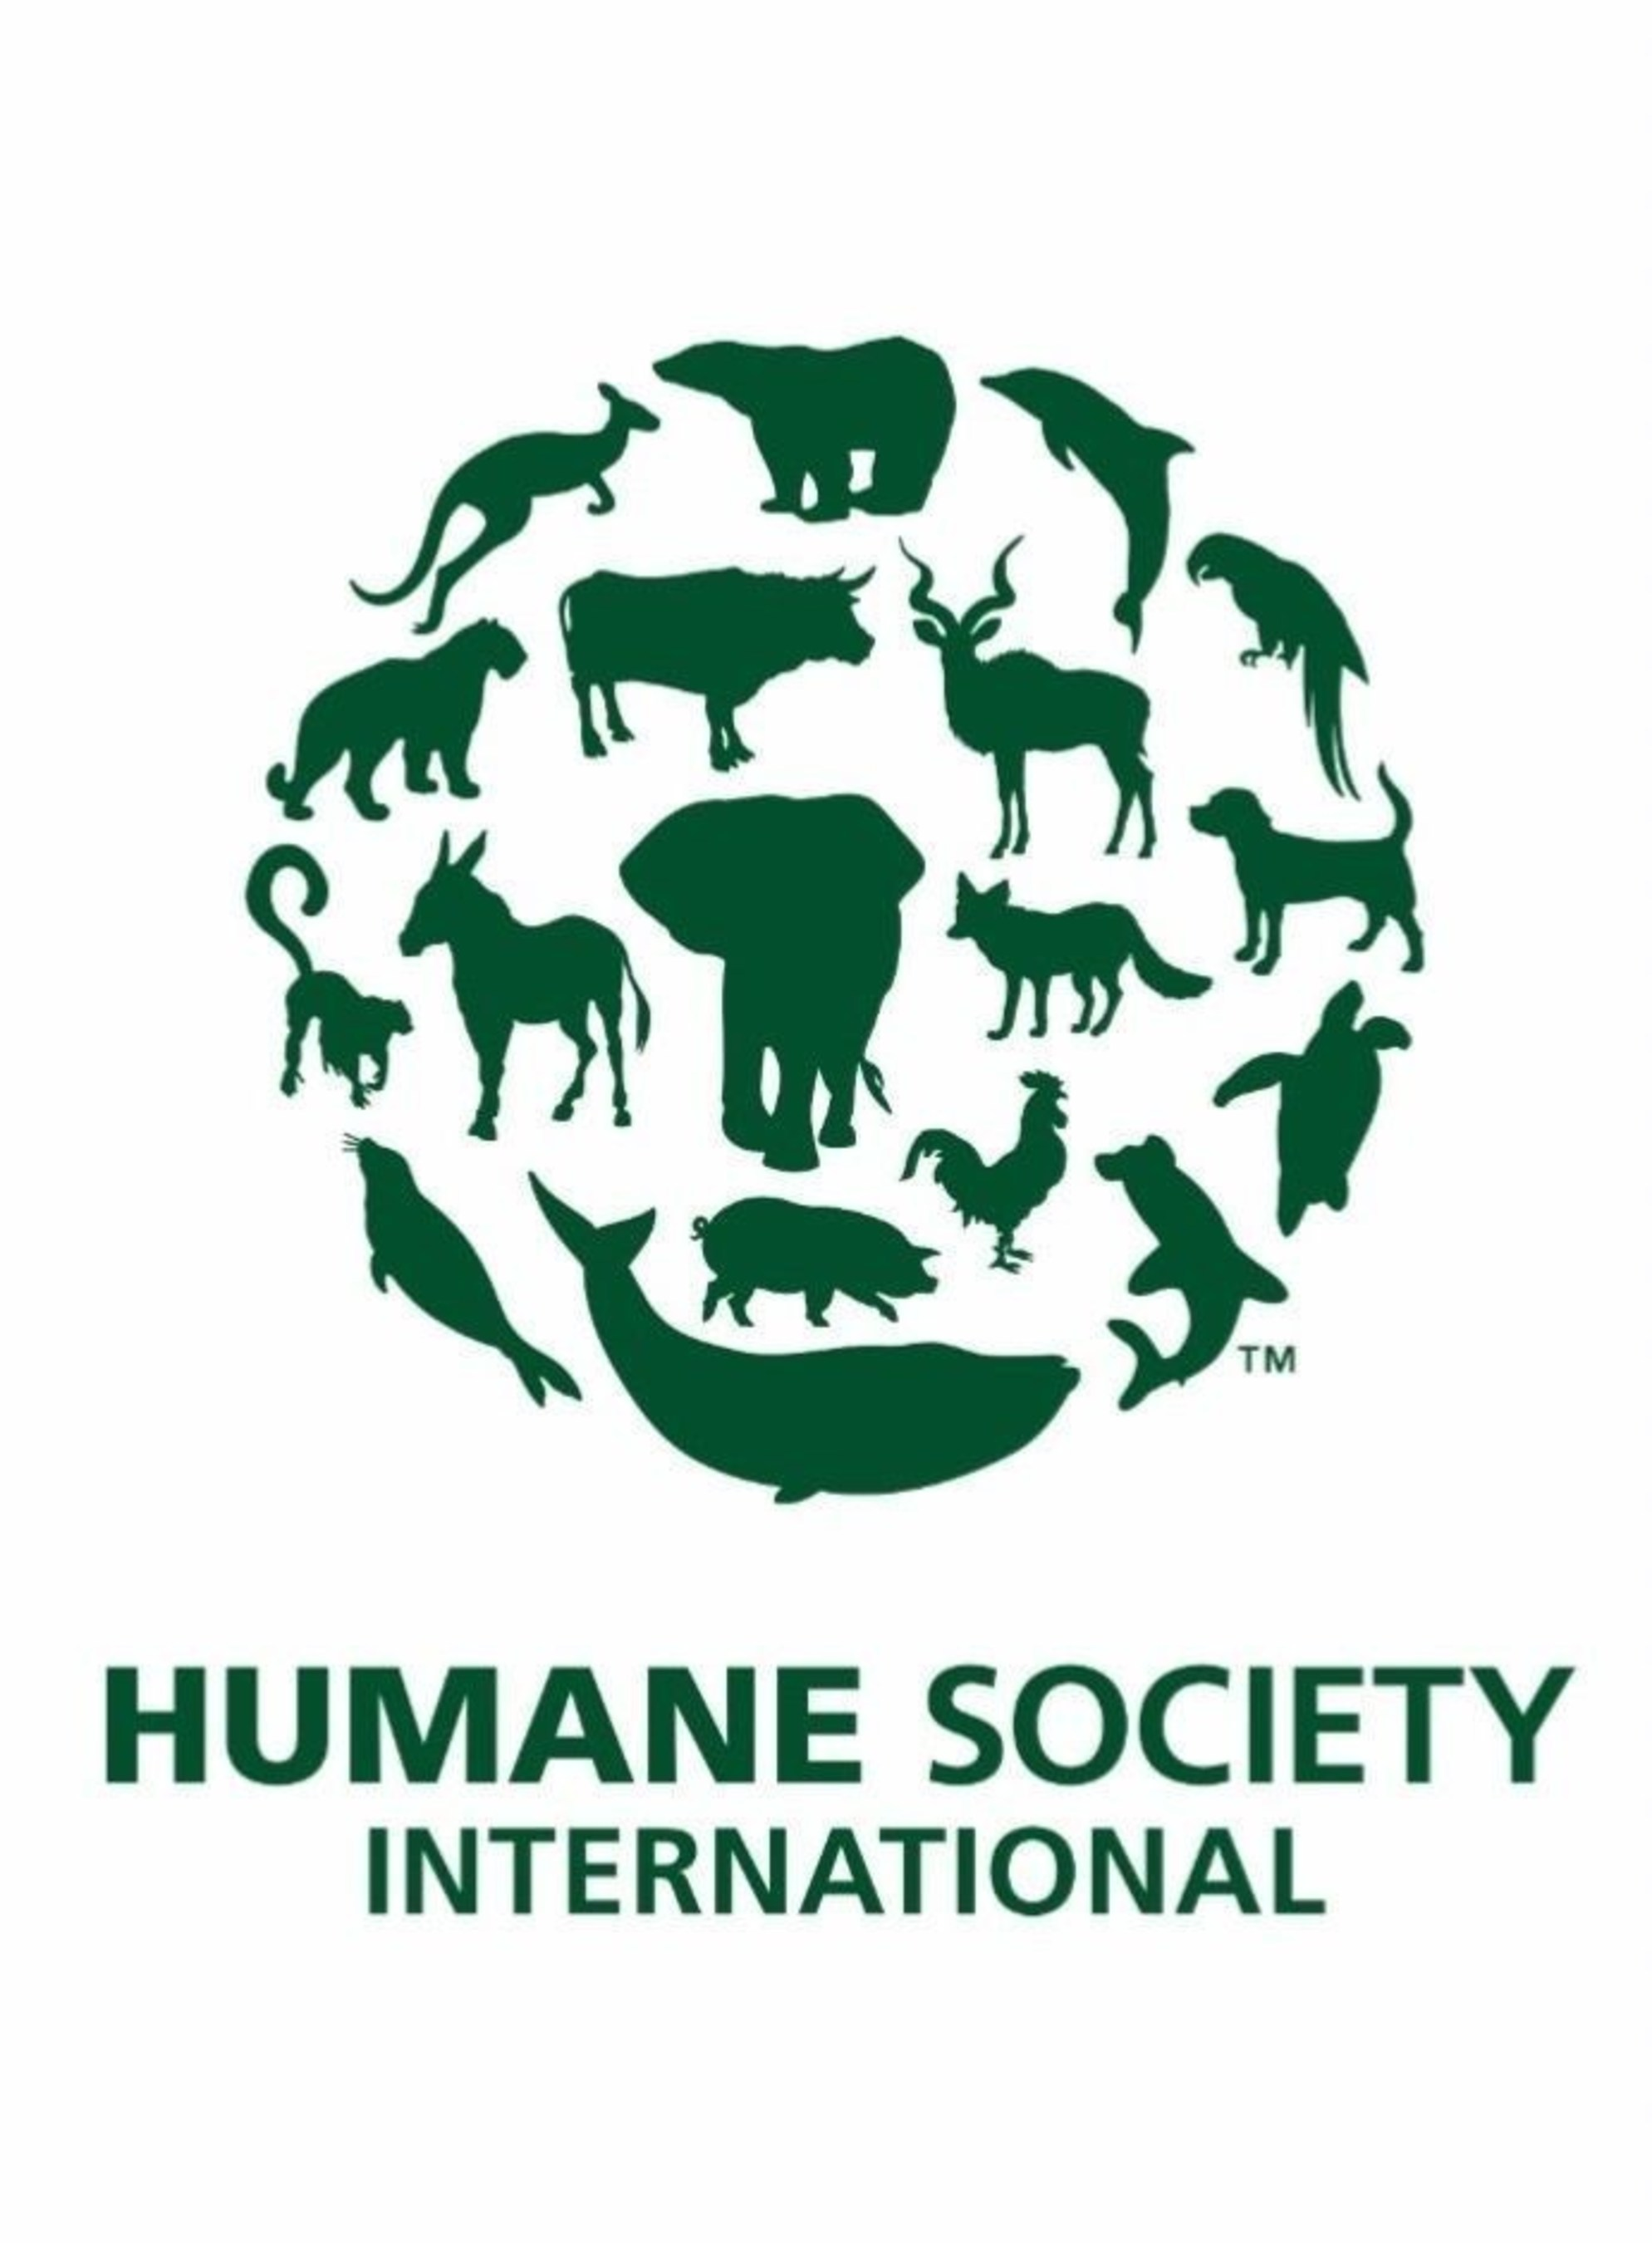 Humane Society International and its partner organizations together constitute one of the world's largest animal protection organizations. For more than 20 years, HSI has been working for the protection of all animals through the use of science, advocacy, education and hands on programs. We lead on a range of issues including animal testing, the dog meat trade, bullfighting and fiestas, the fur trade, farm animal protection and Meatless Mondays, puppy mills, Canadian seal slaughter, and wildlife protection - on the Web at hsi.org. (PRNewsFoto/Humane Society International) (PRNewsFoto/Humane Society International)